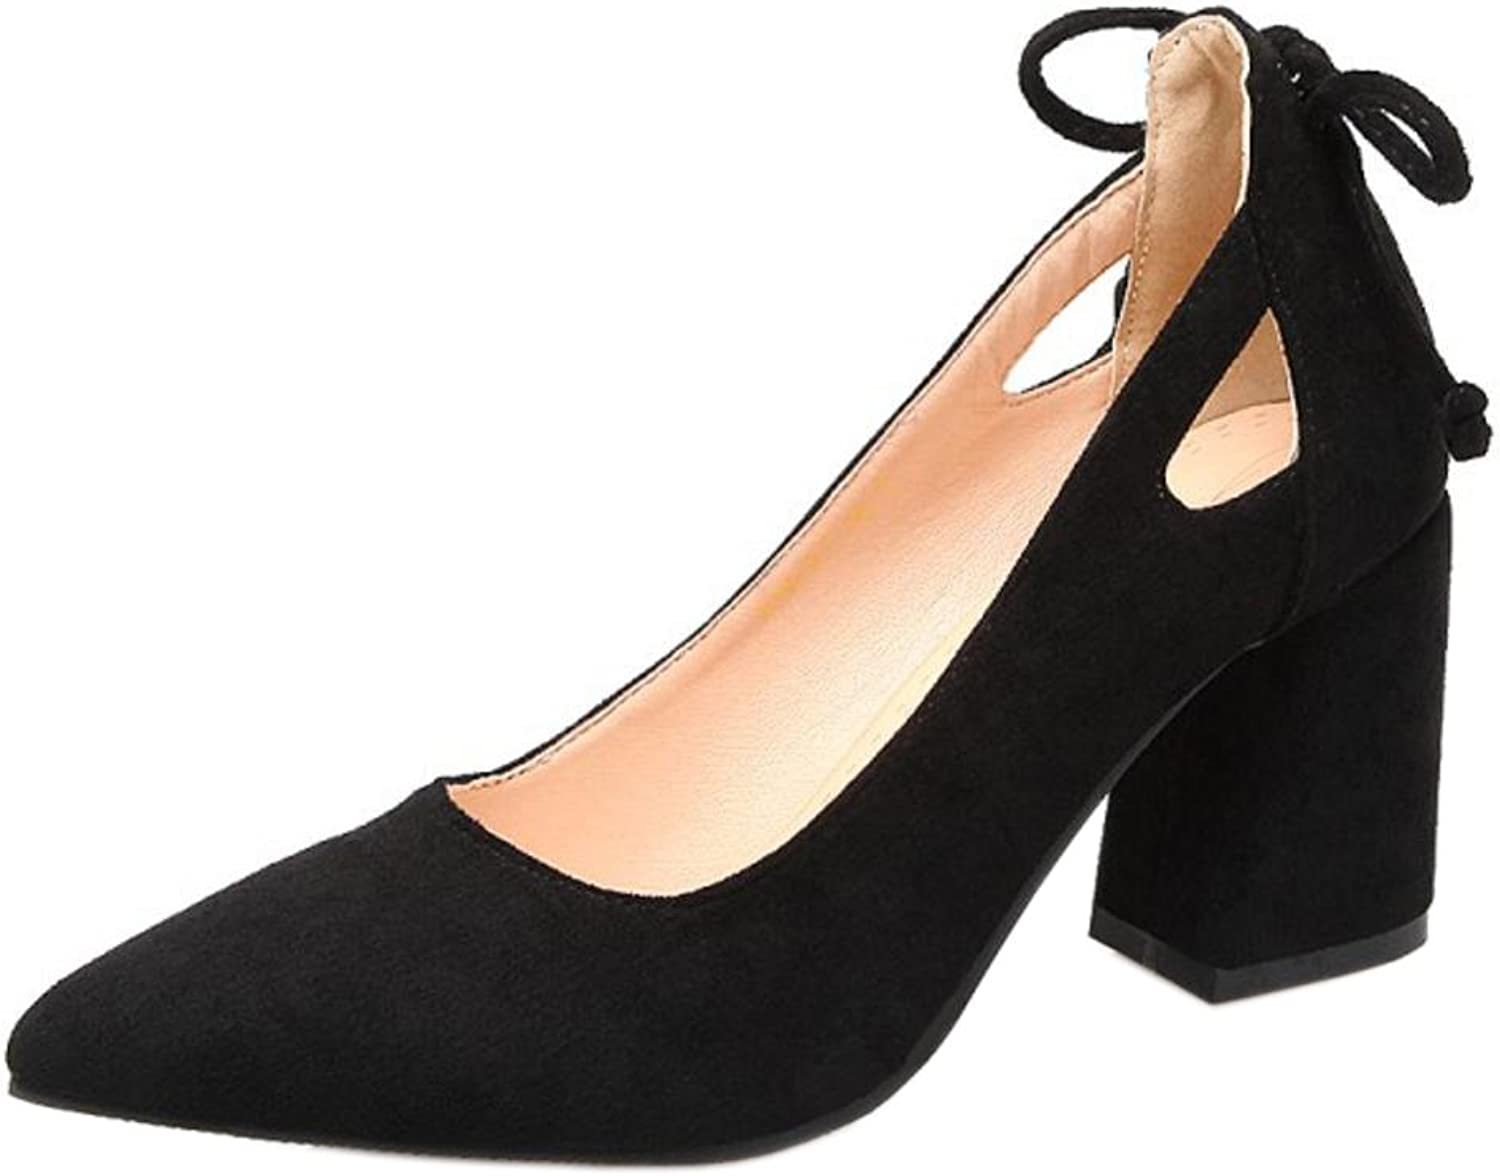 TAOFFEN Women's Stylish Pointed Toe Court shoes